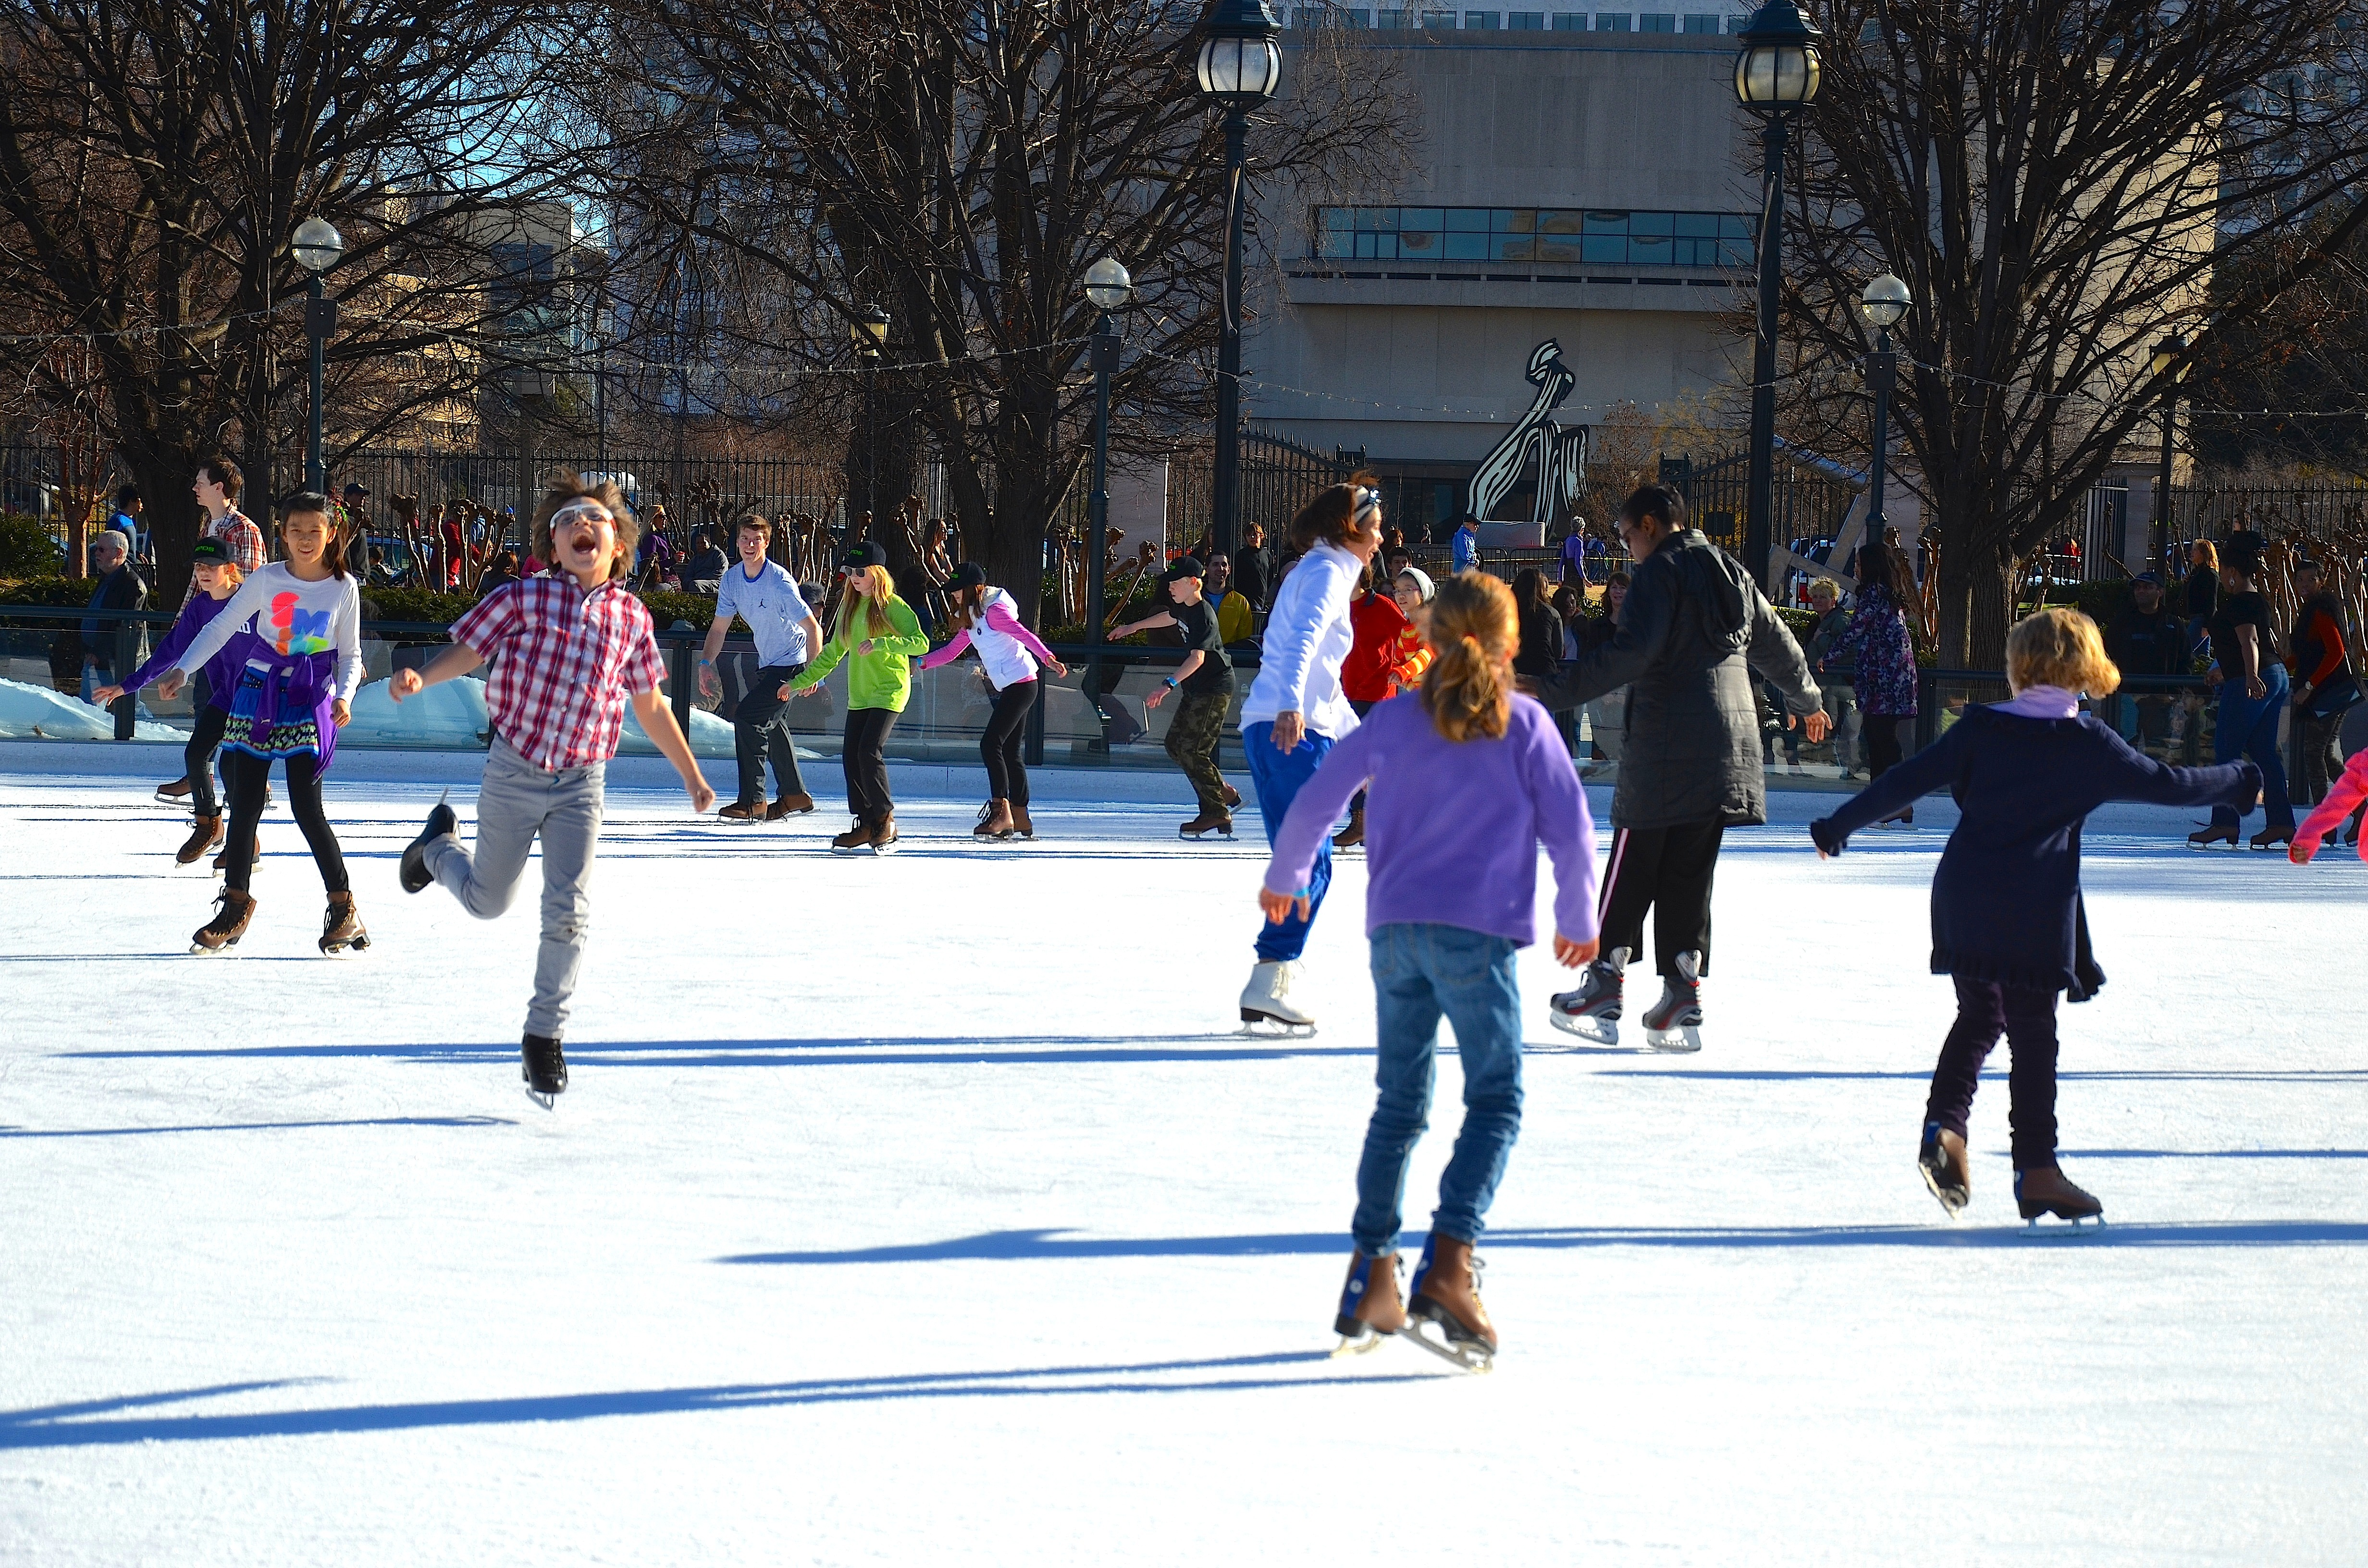 A group of kids go ice-skating at an outdoor rink.